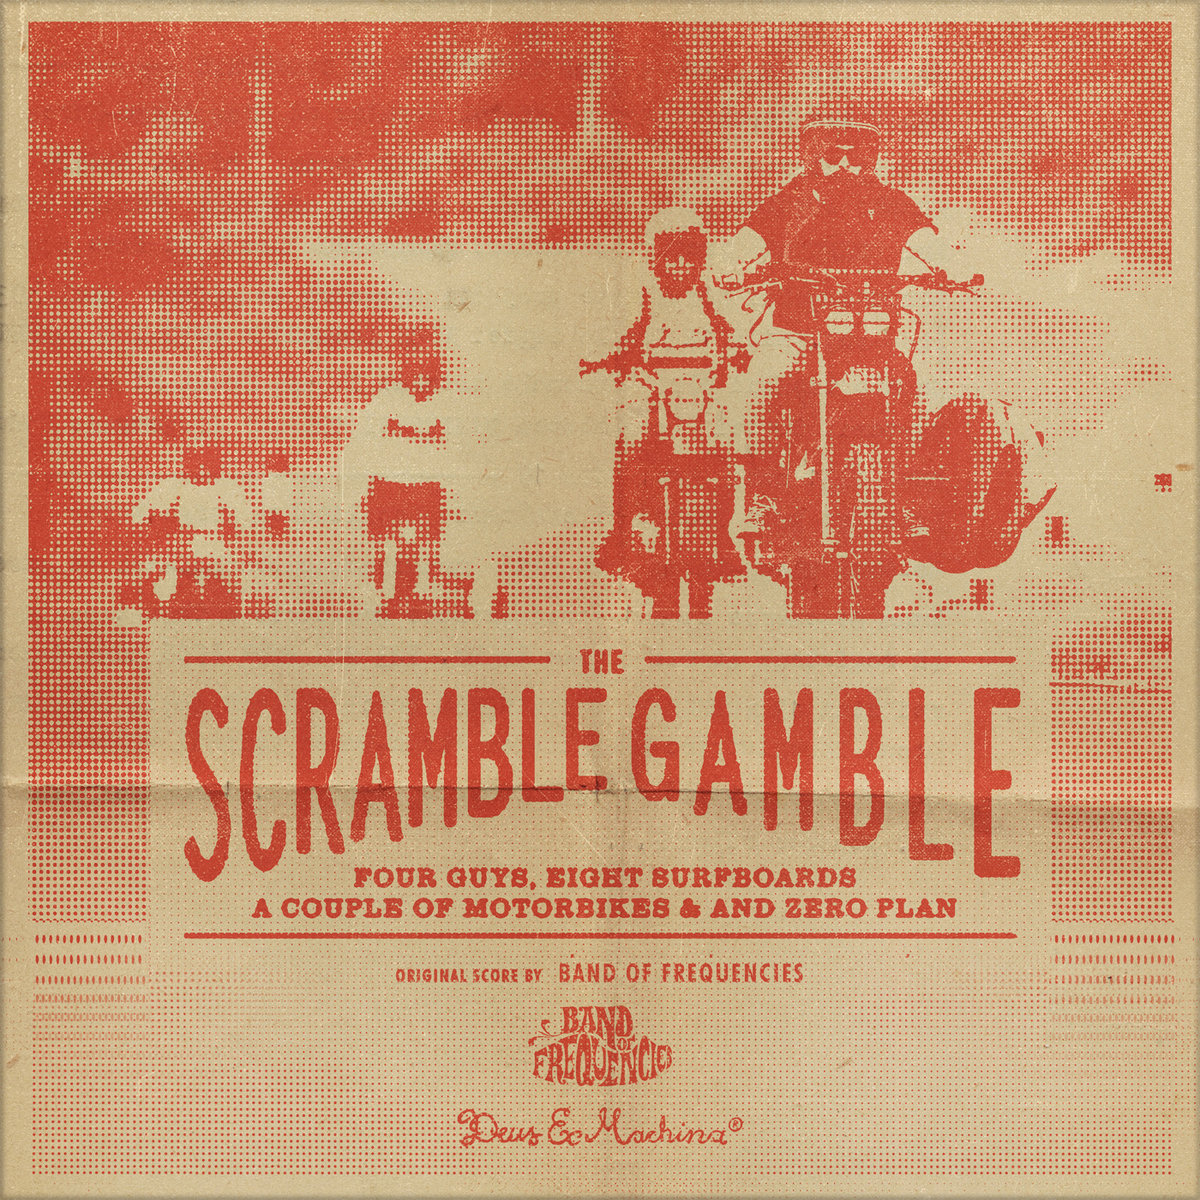 The Scramble Gamble LOG & Motorbikes Cross